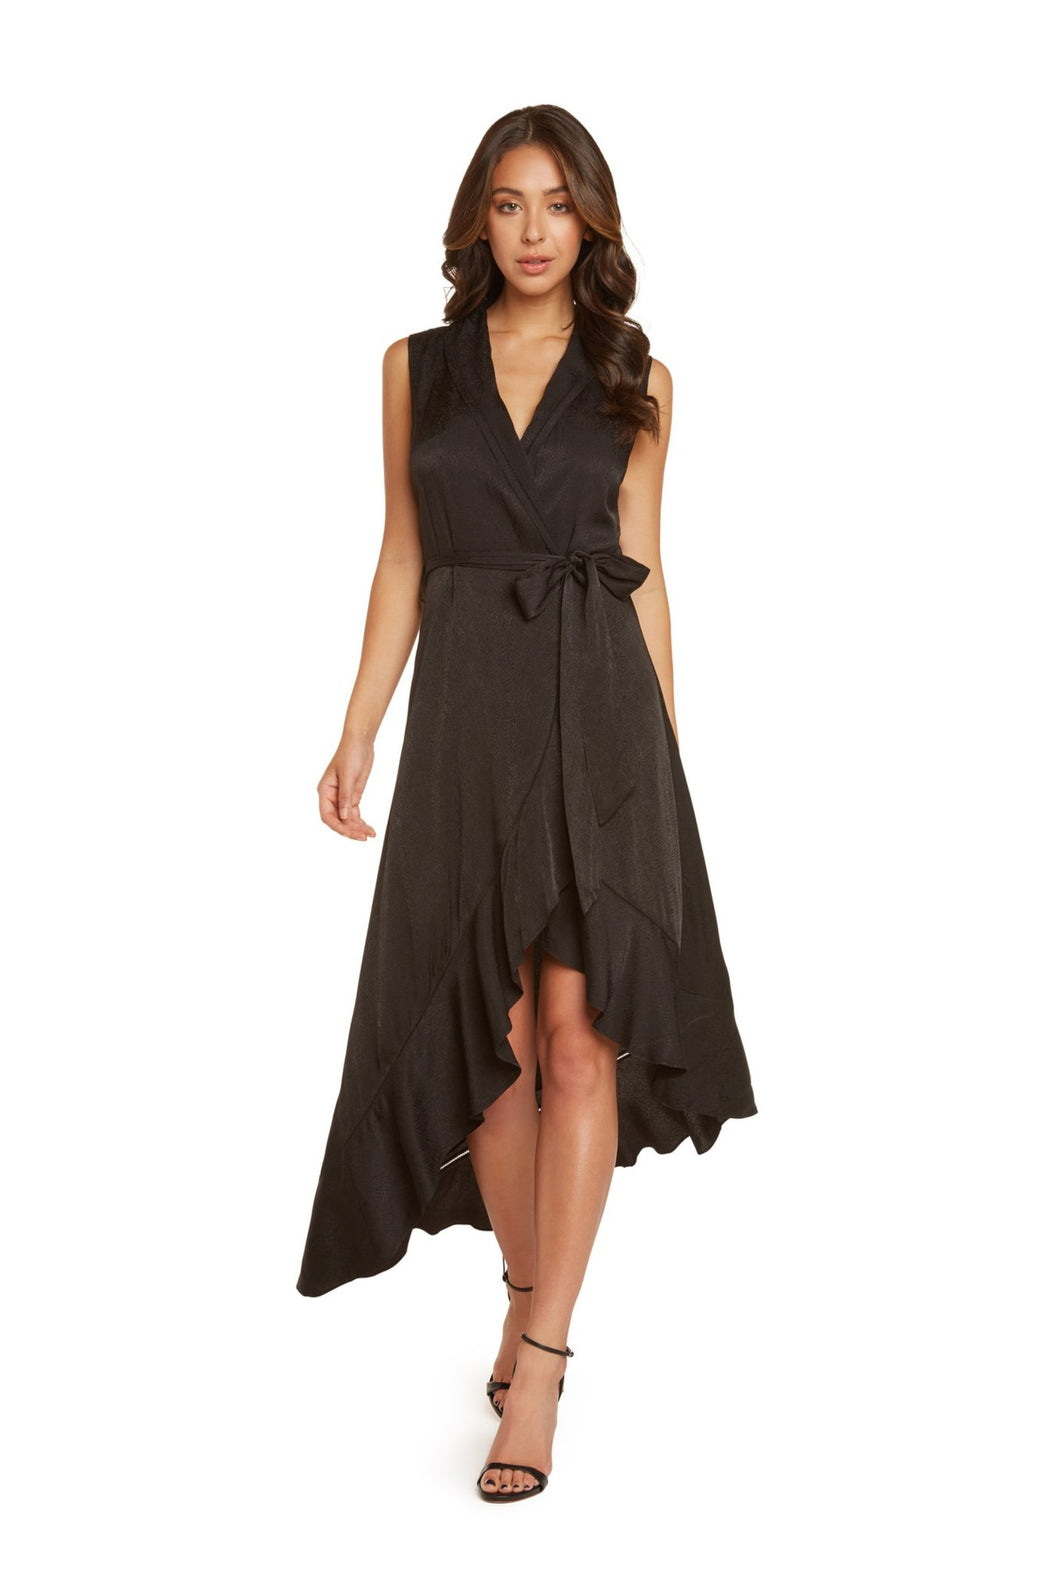 Ivy Sleeveless Midi Dress in Black Viscose Jacquard With Crochet Stitch Detail